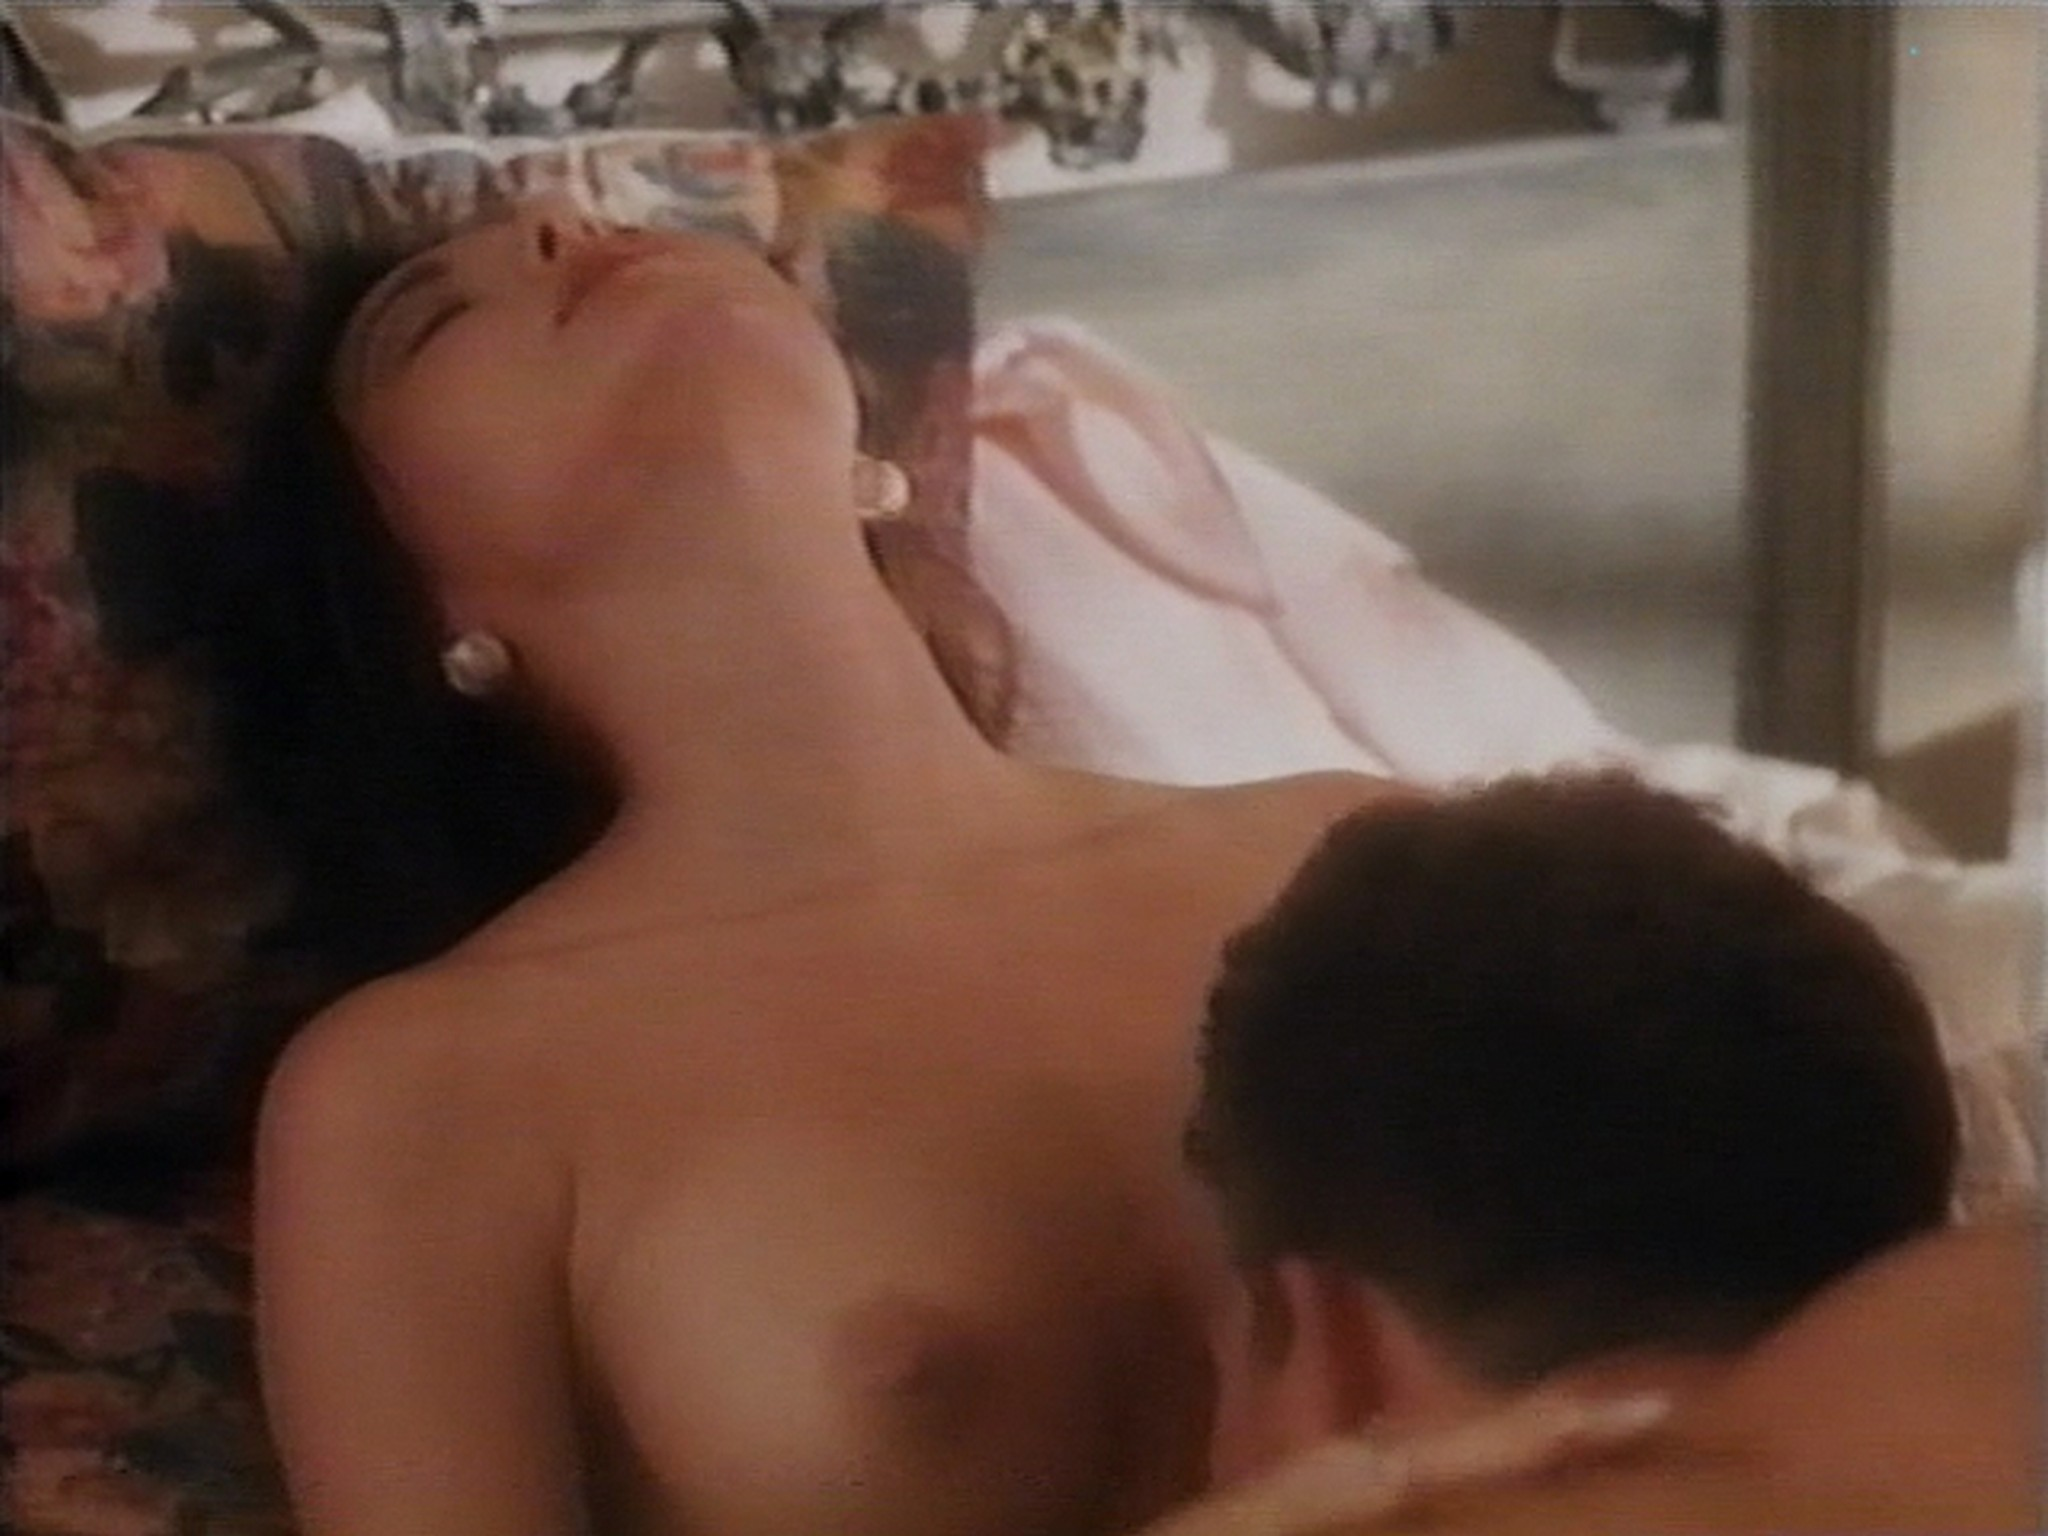 Shannon Whirry nude Elizabeth Sandifer and Shannon McLeod all nude and sex in - Animal Instincts II (1994) (18)